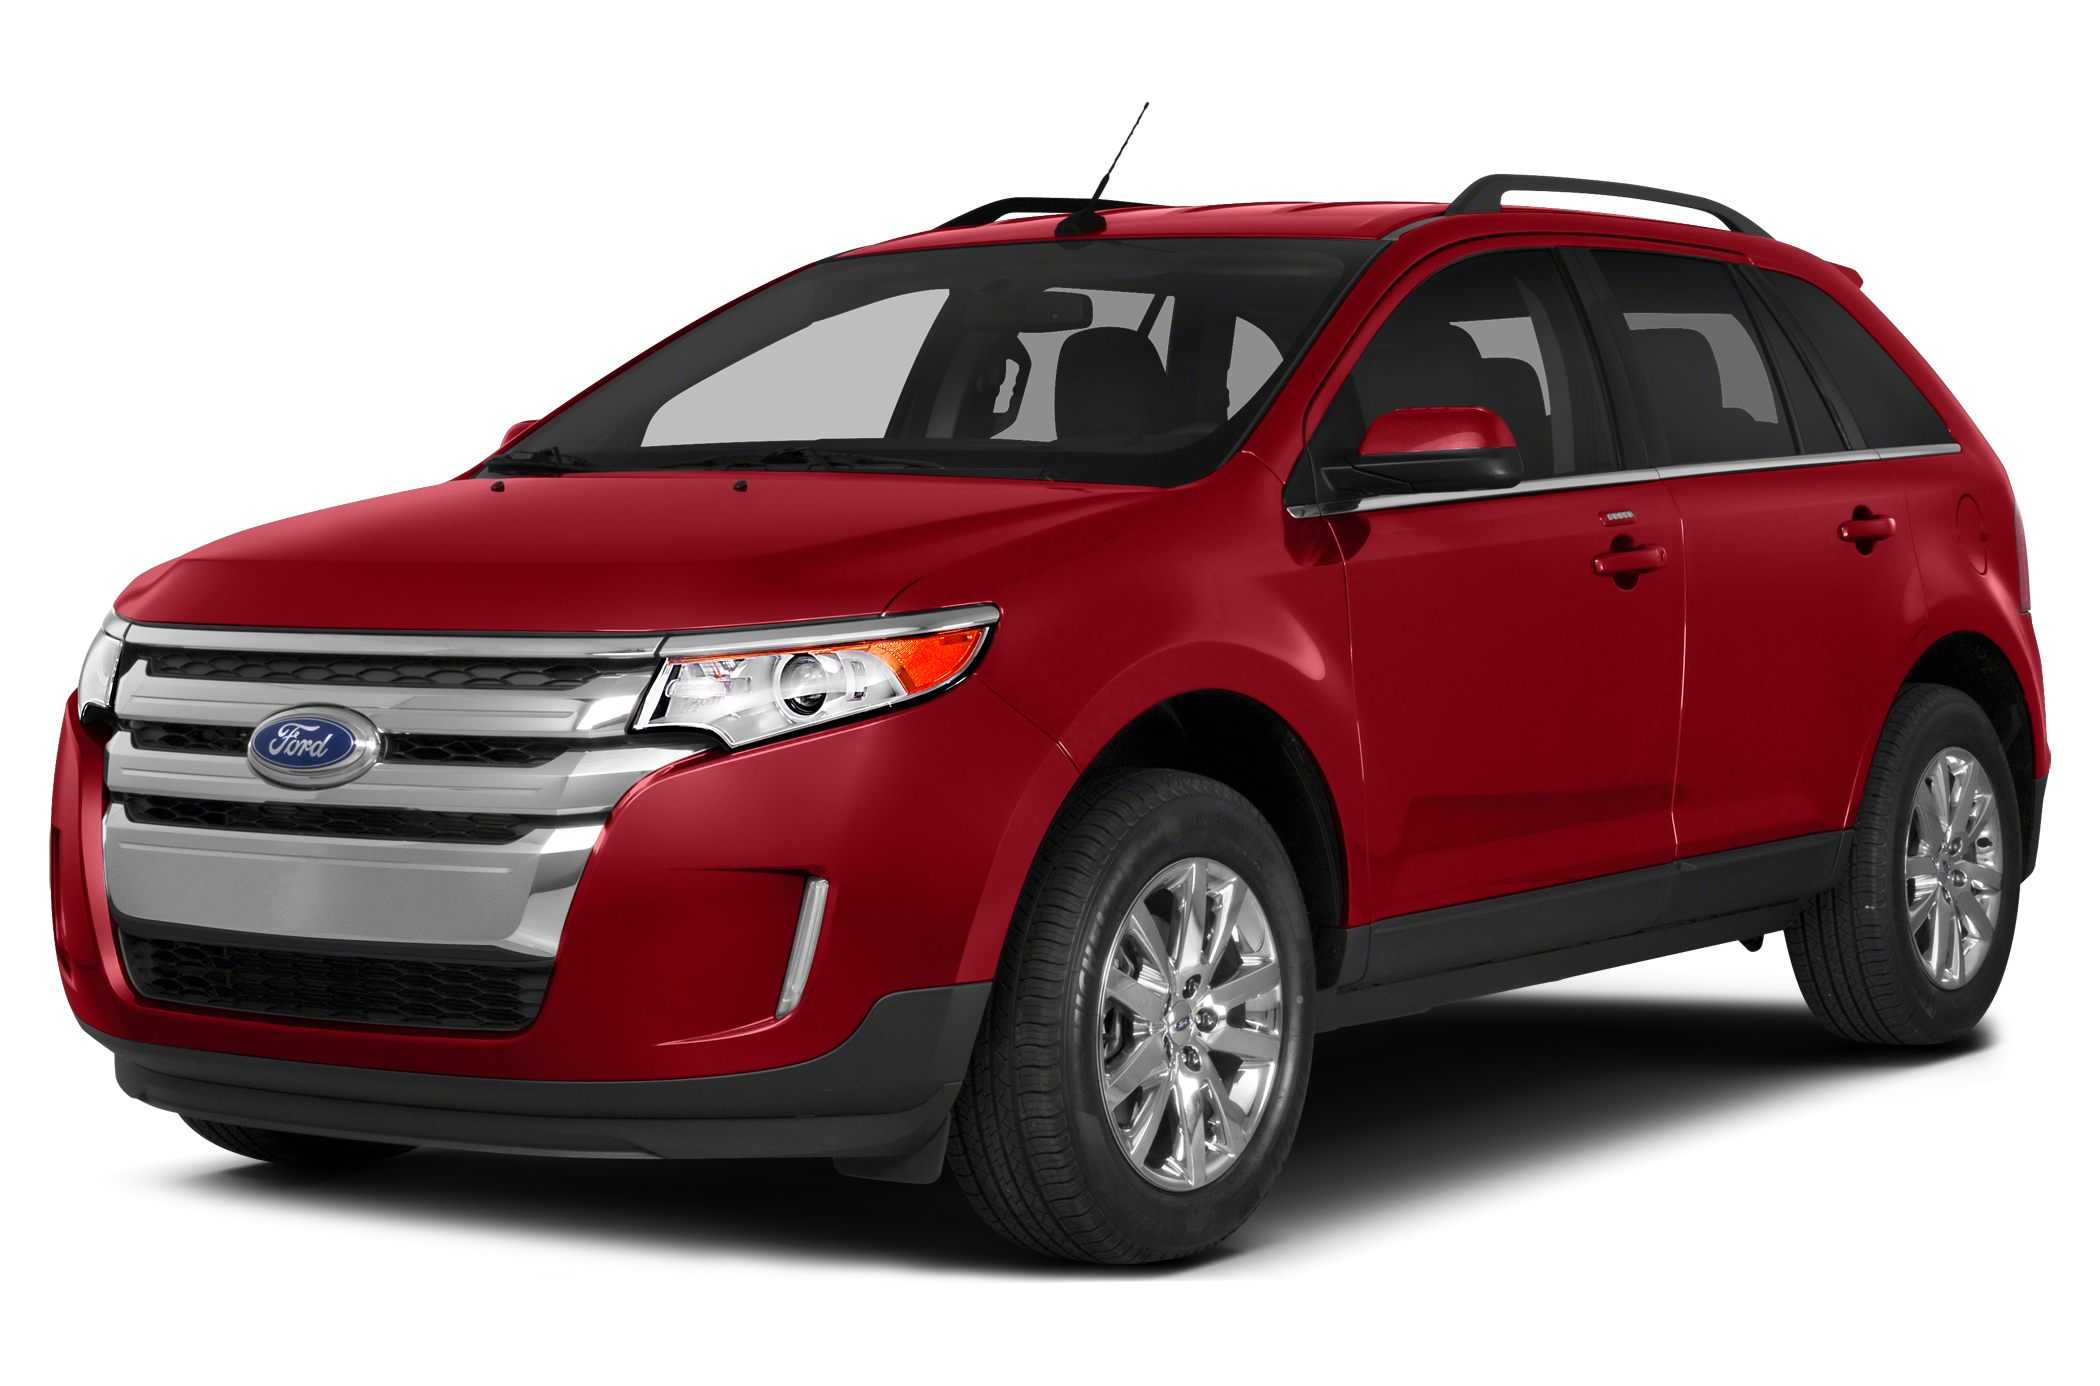 Used  Ford Edge D Suv Fwd Limited At Mike Burkart Ford Near Plymouth Wi